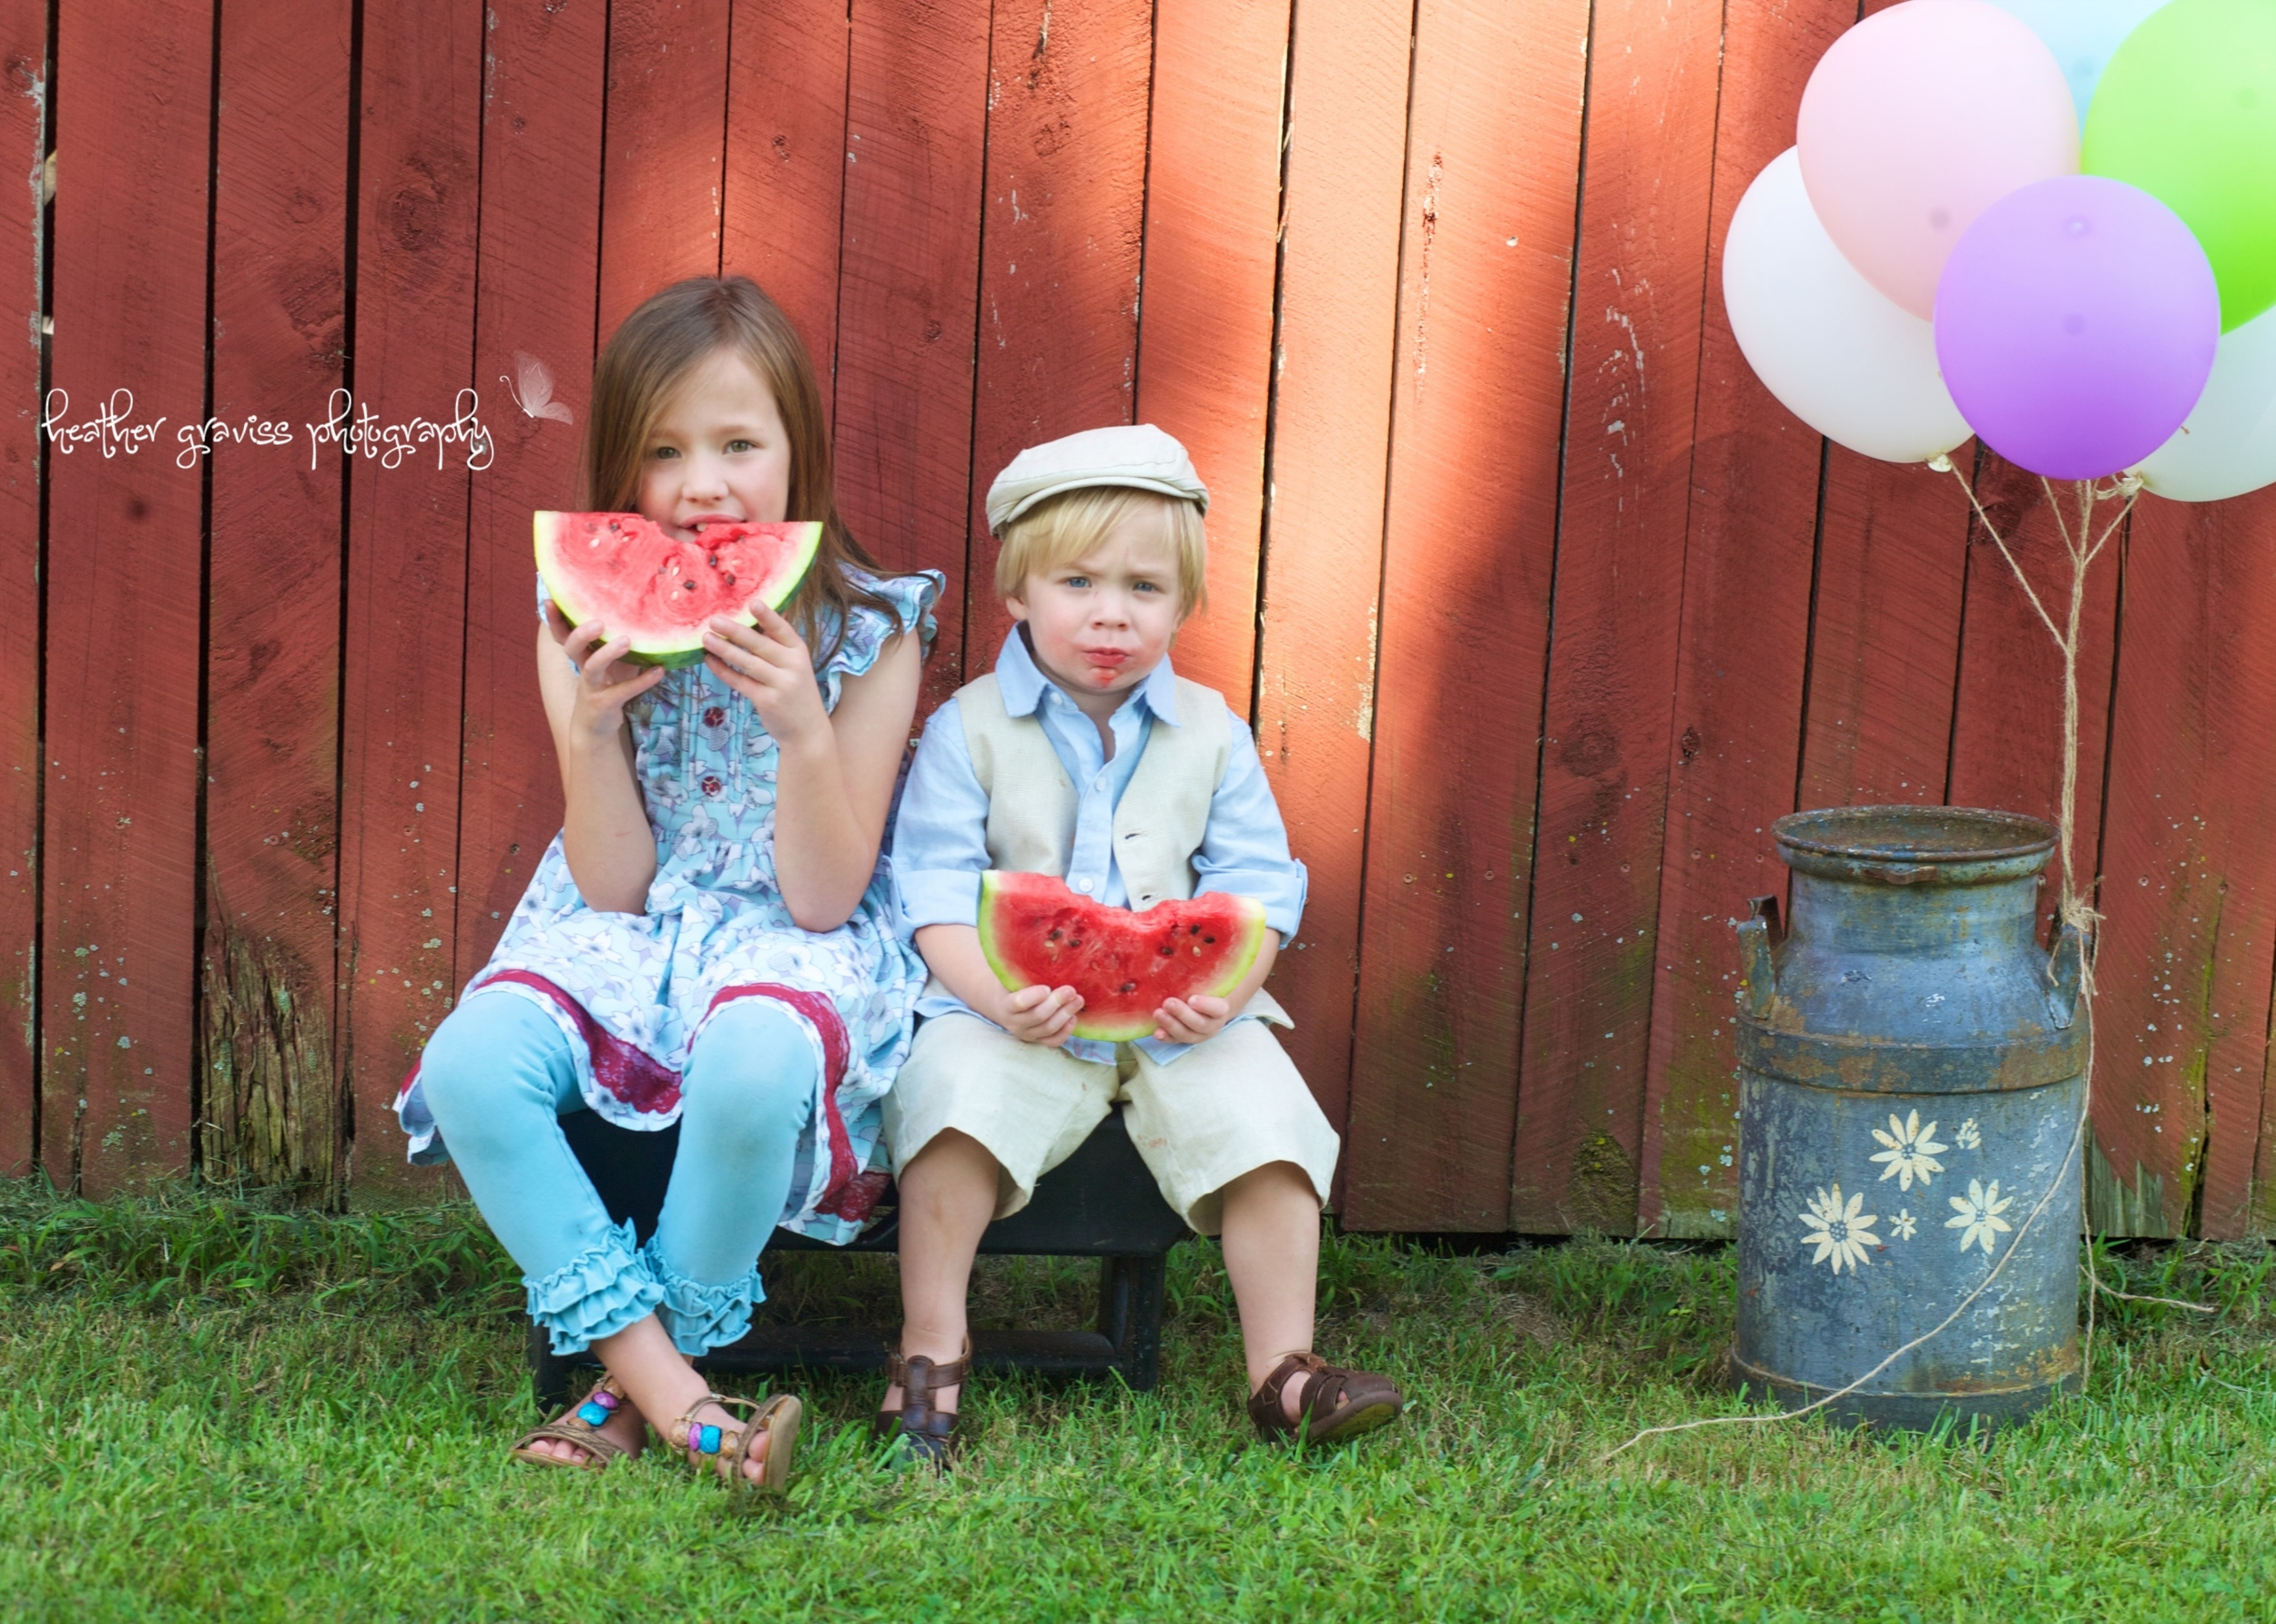 siblings eating watermelon